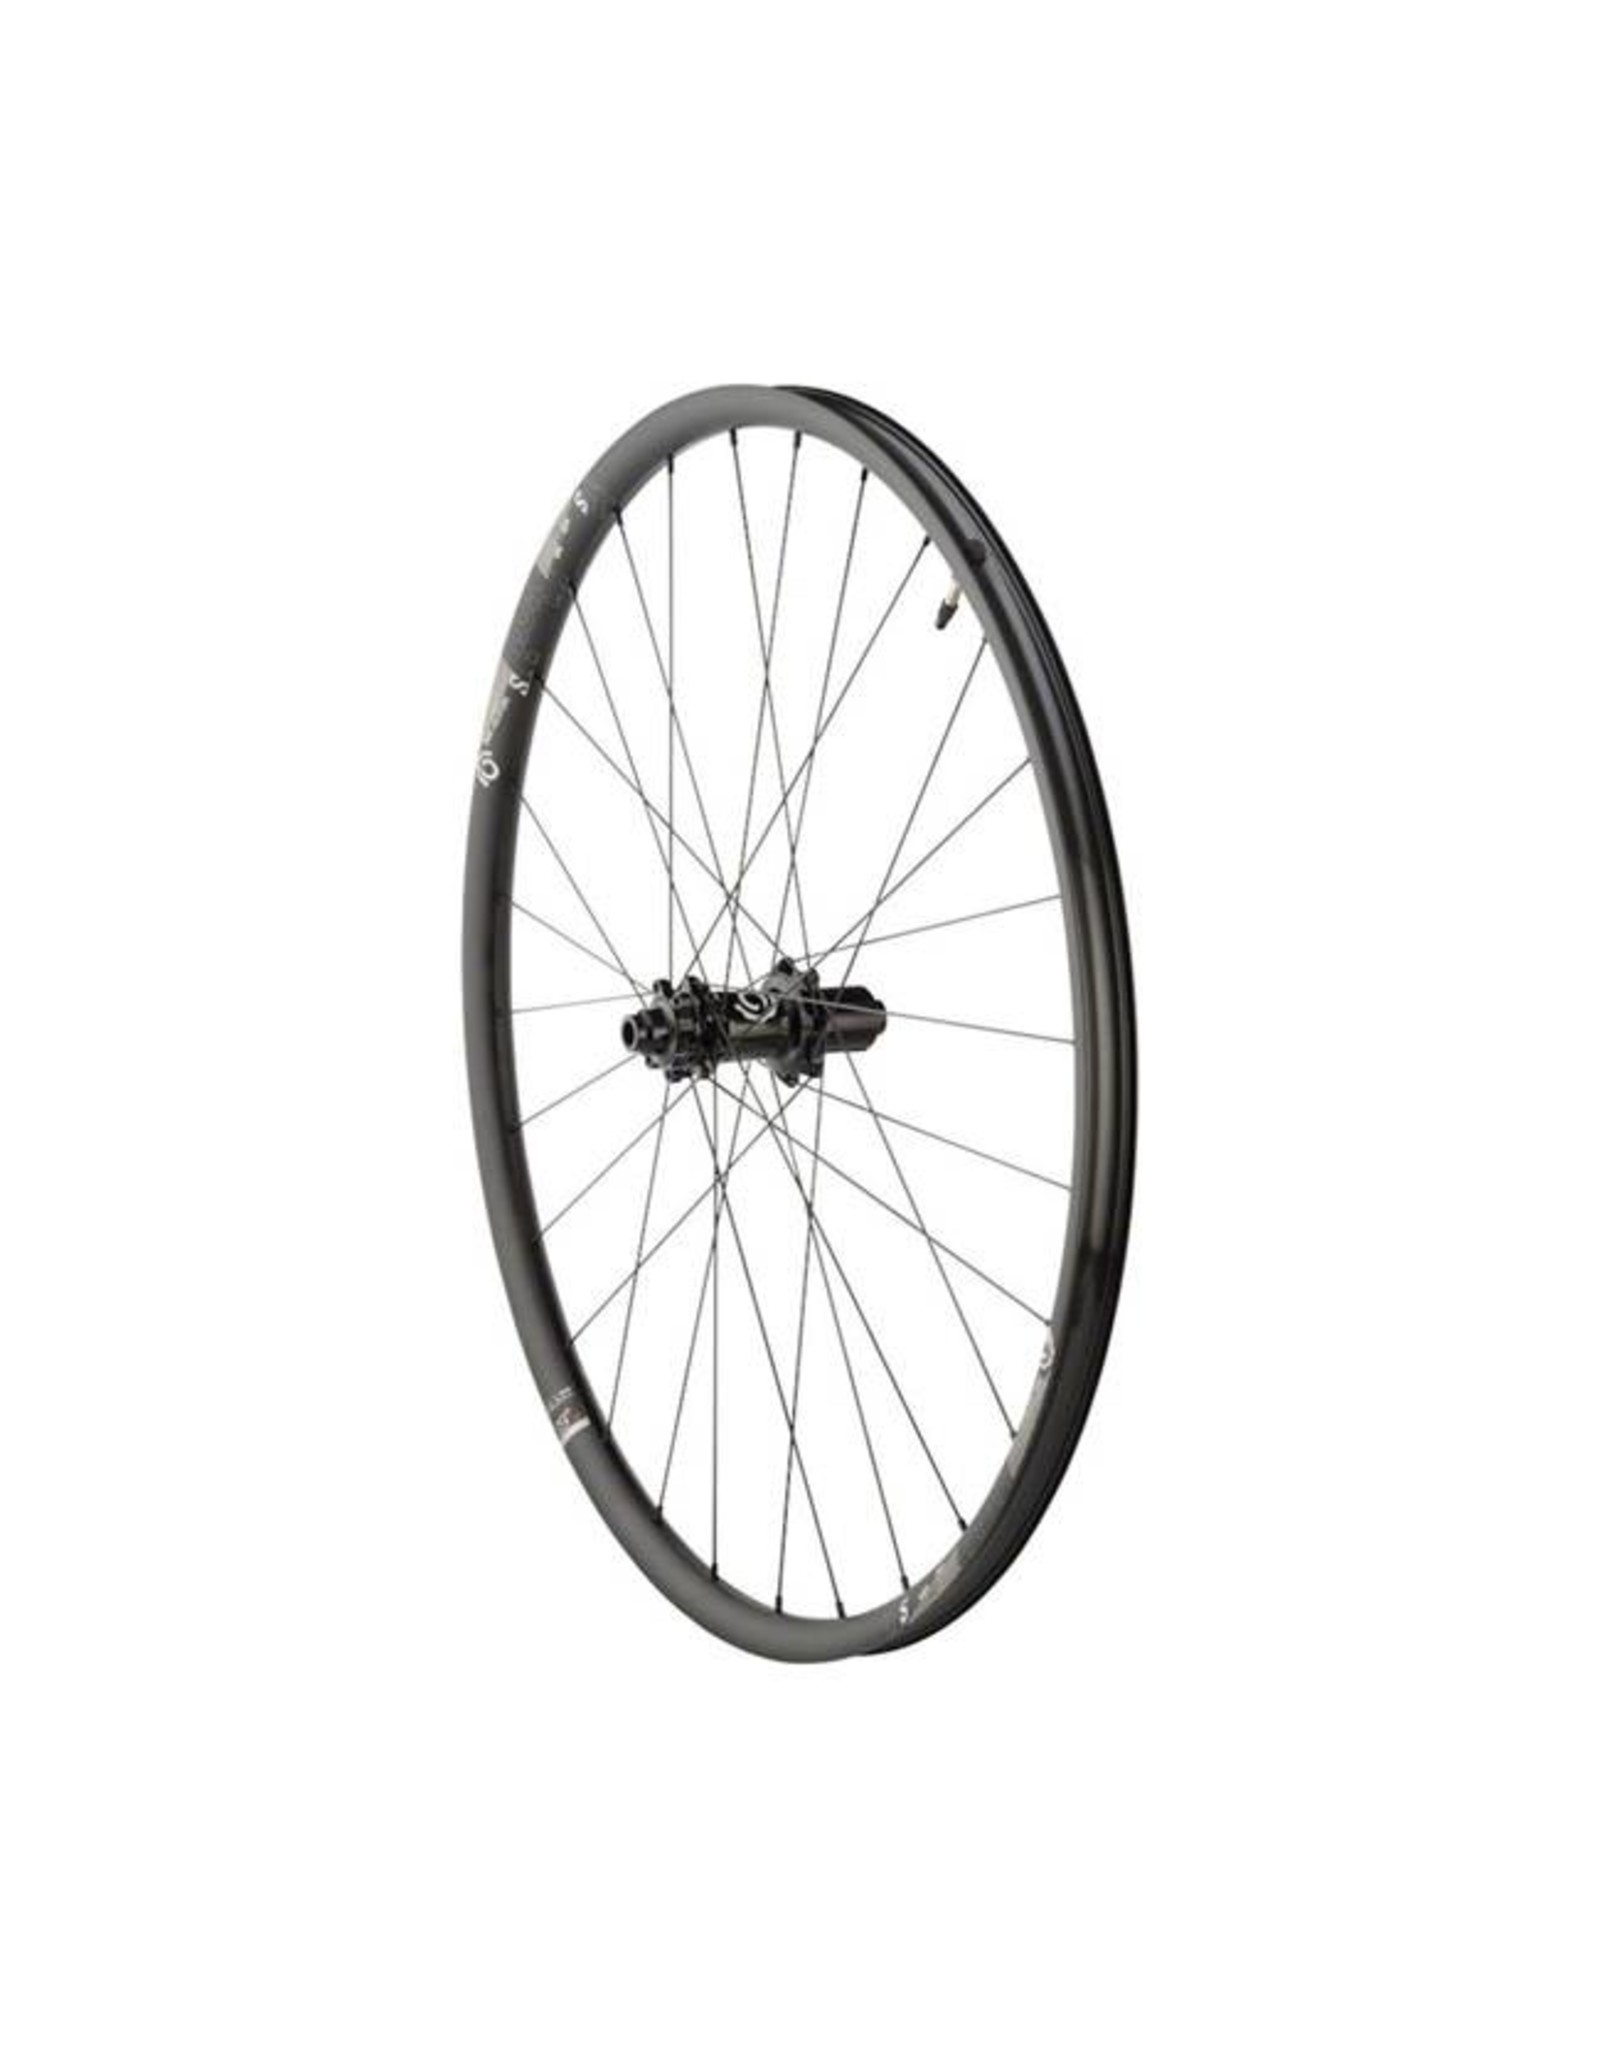 "Industry Nine Industry Nine Trail S Wheelset: 29"", 15 x 110mm Thru Axle Boost Front, 12 x 148mm Boost Thru Axle Rear, Shimano HG Freehub, Black"